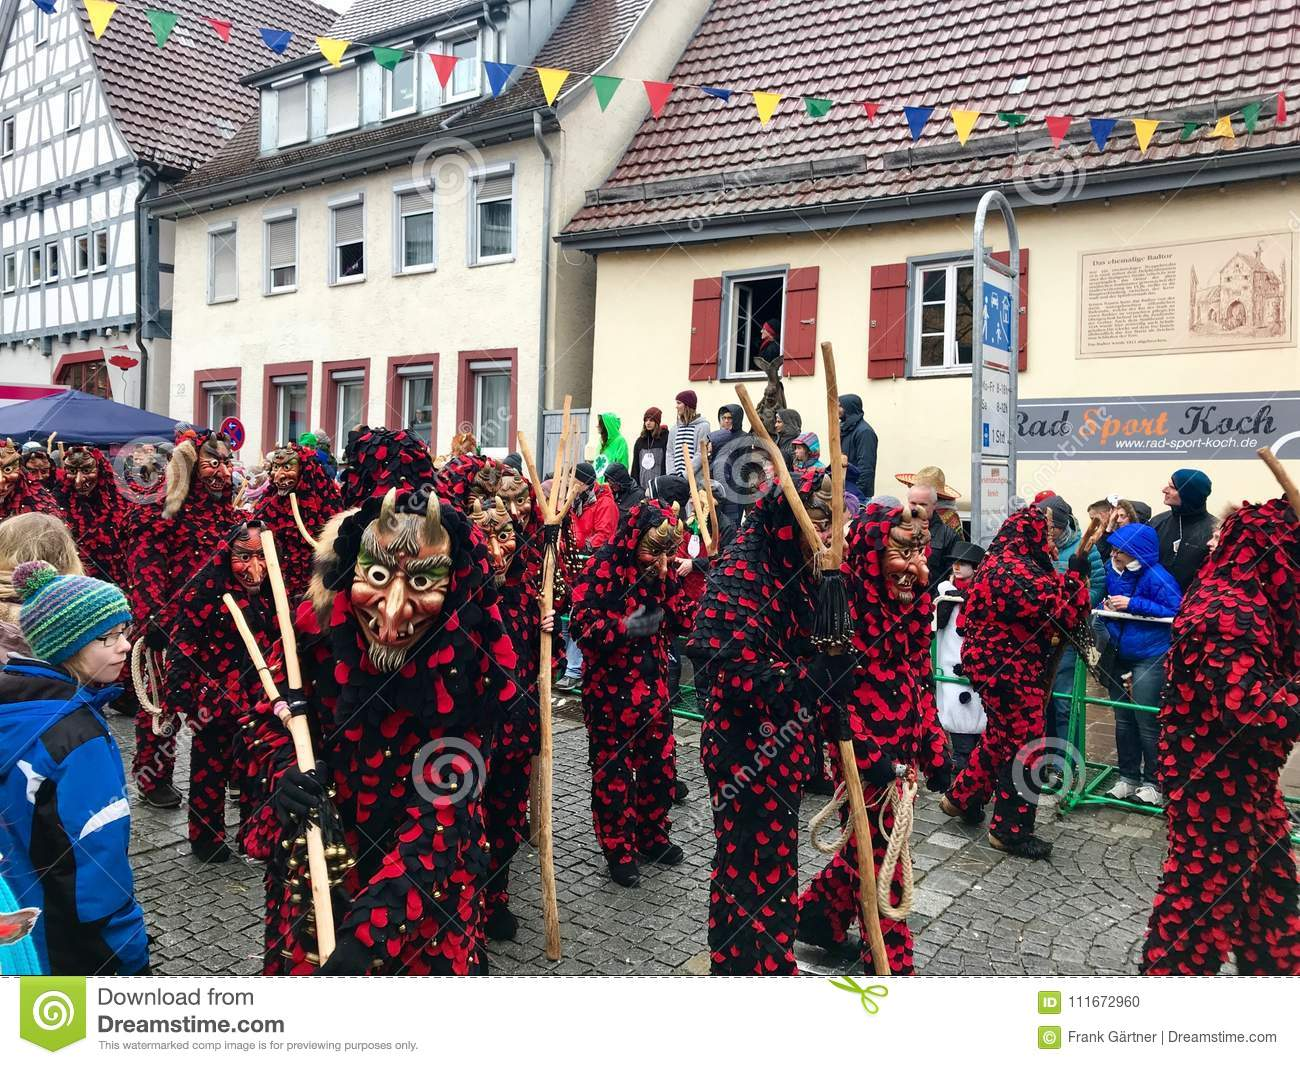 Traditional carnival in South Germany - Swabian-Alemannic Fastnacht. Witches costumes during the carnival procession.